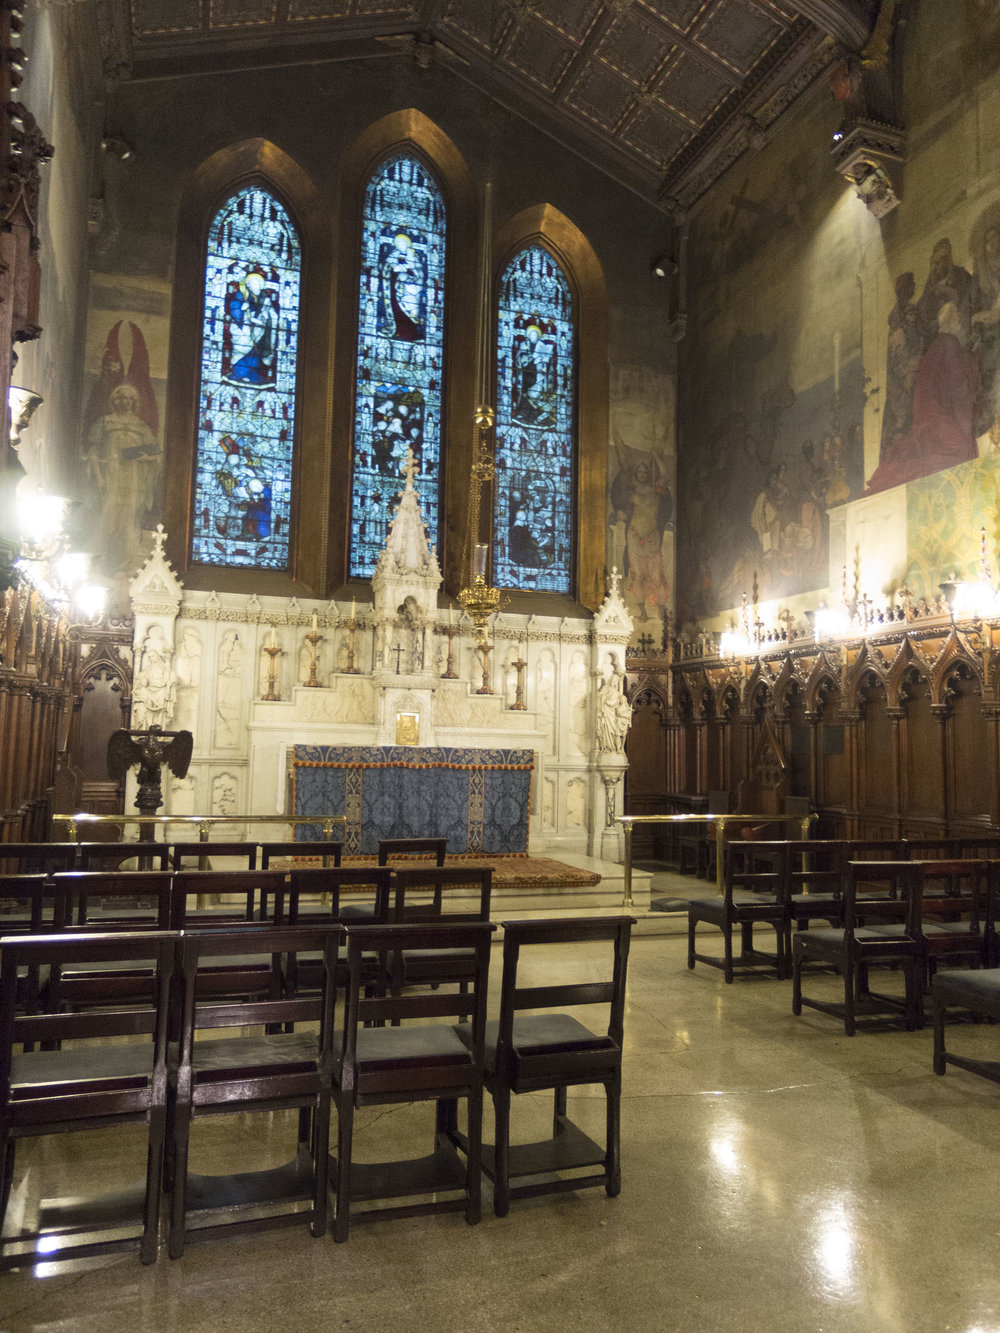 The Lady Chapel at Saint Mary's